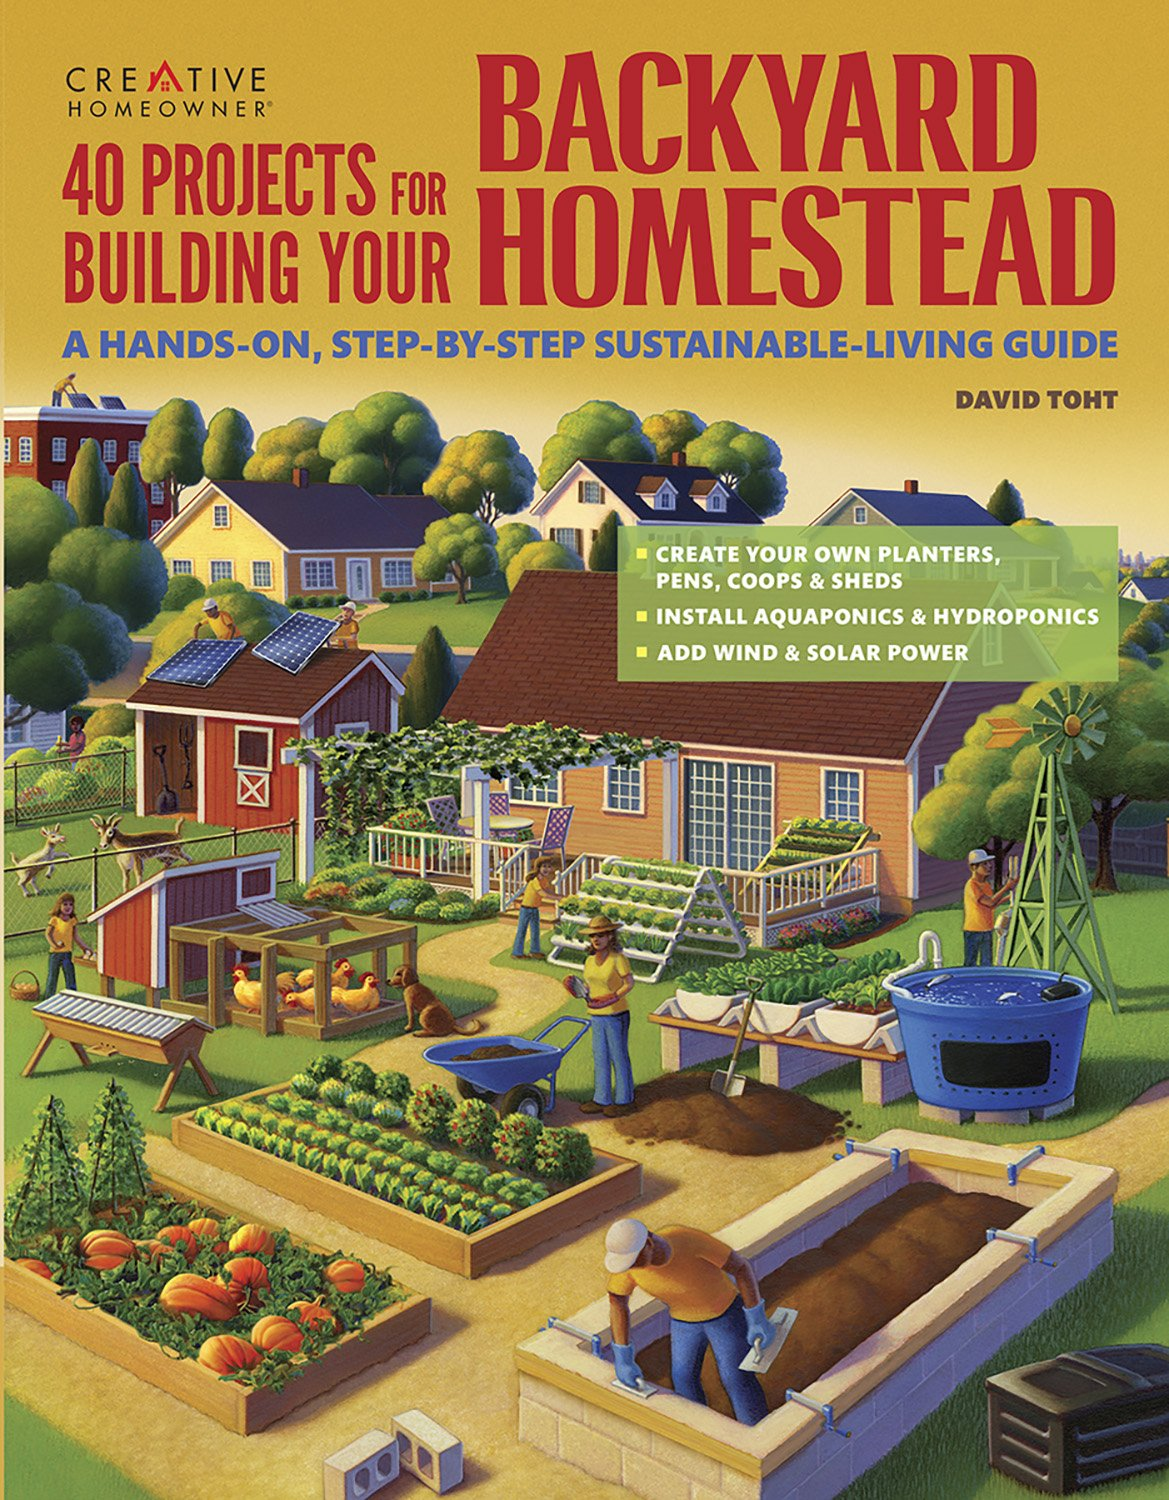 40 Projects For Building Your Backyard Homestead A Hands On Step Electricity To Shed Electrical Diy Wiring By Sustainable Living Guide Creative Homeowner Includes Fences Coops Sheds